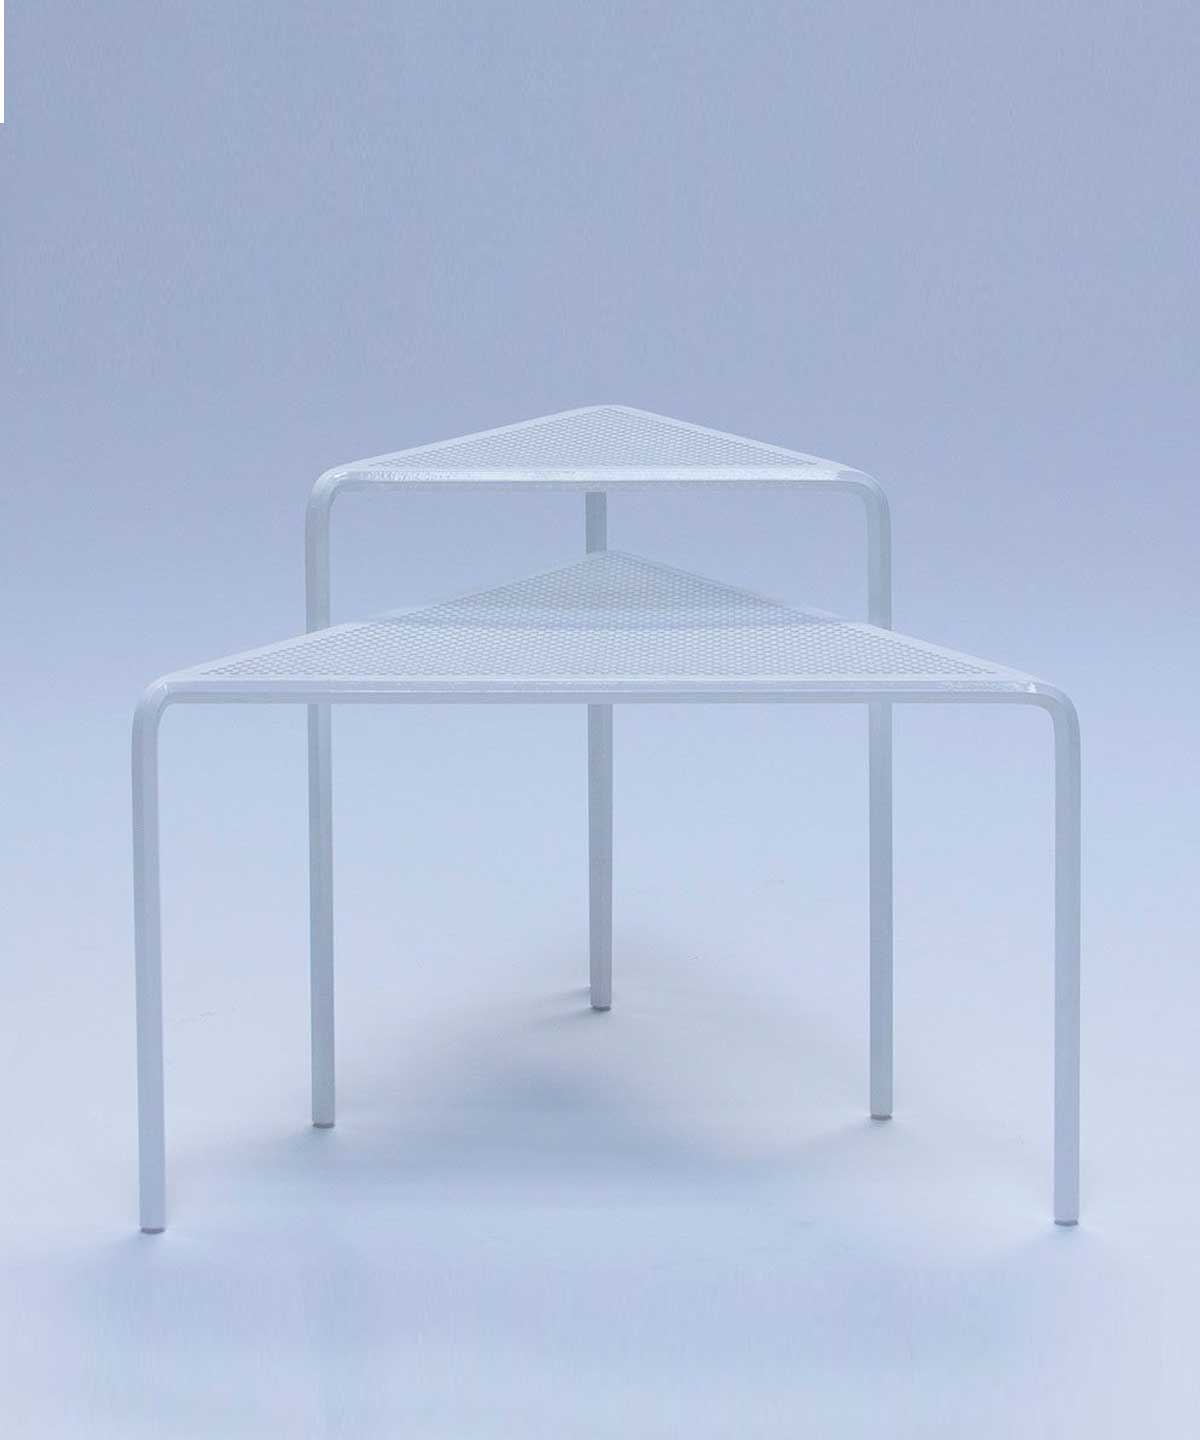 Rod & Perf Table, Small